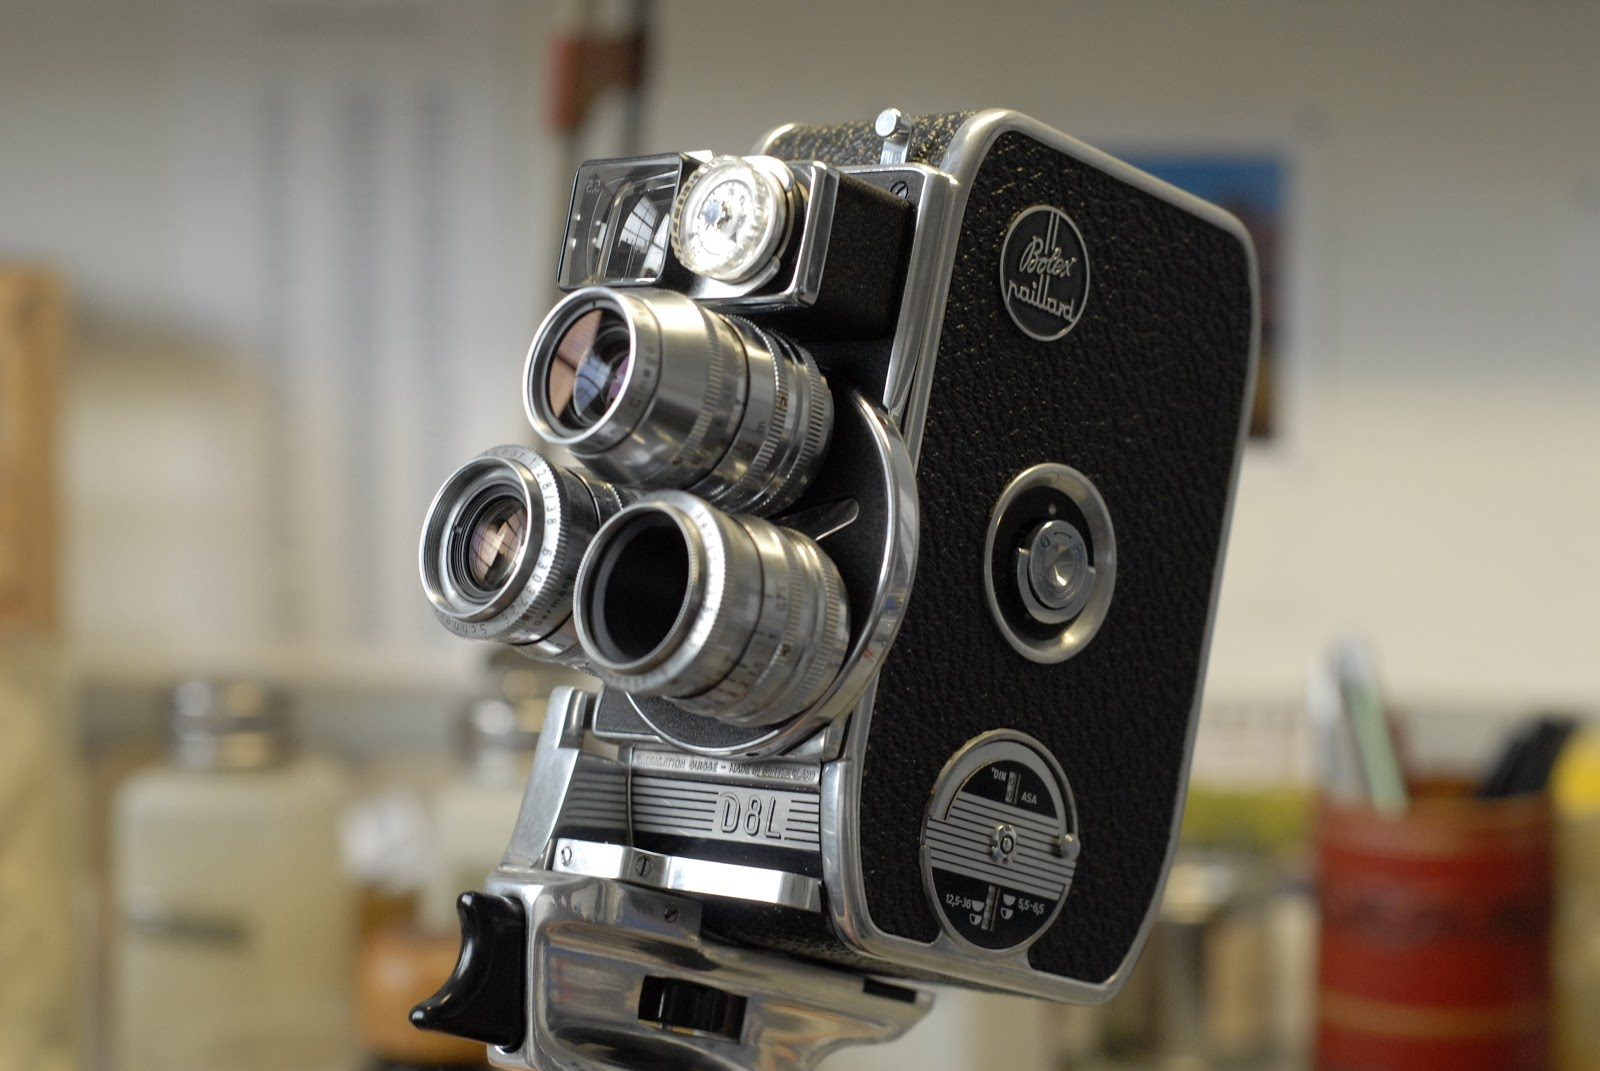 A little history. The legendary Swiss camera maker Bolex ...